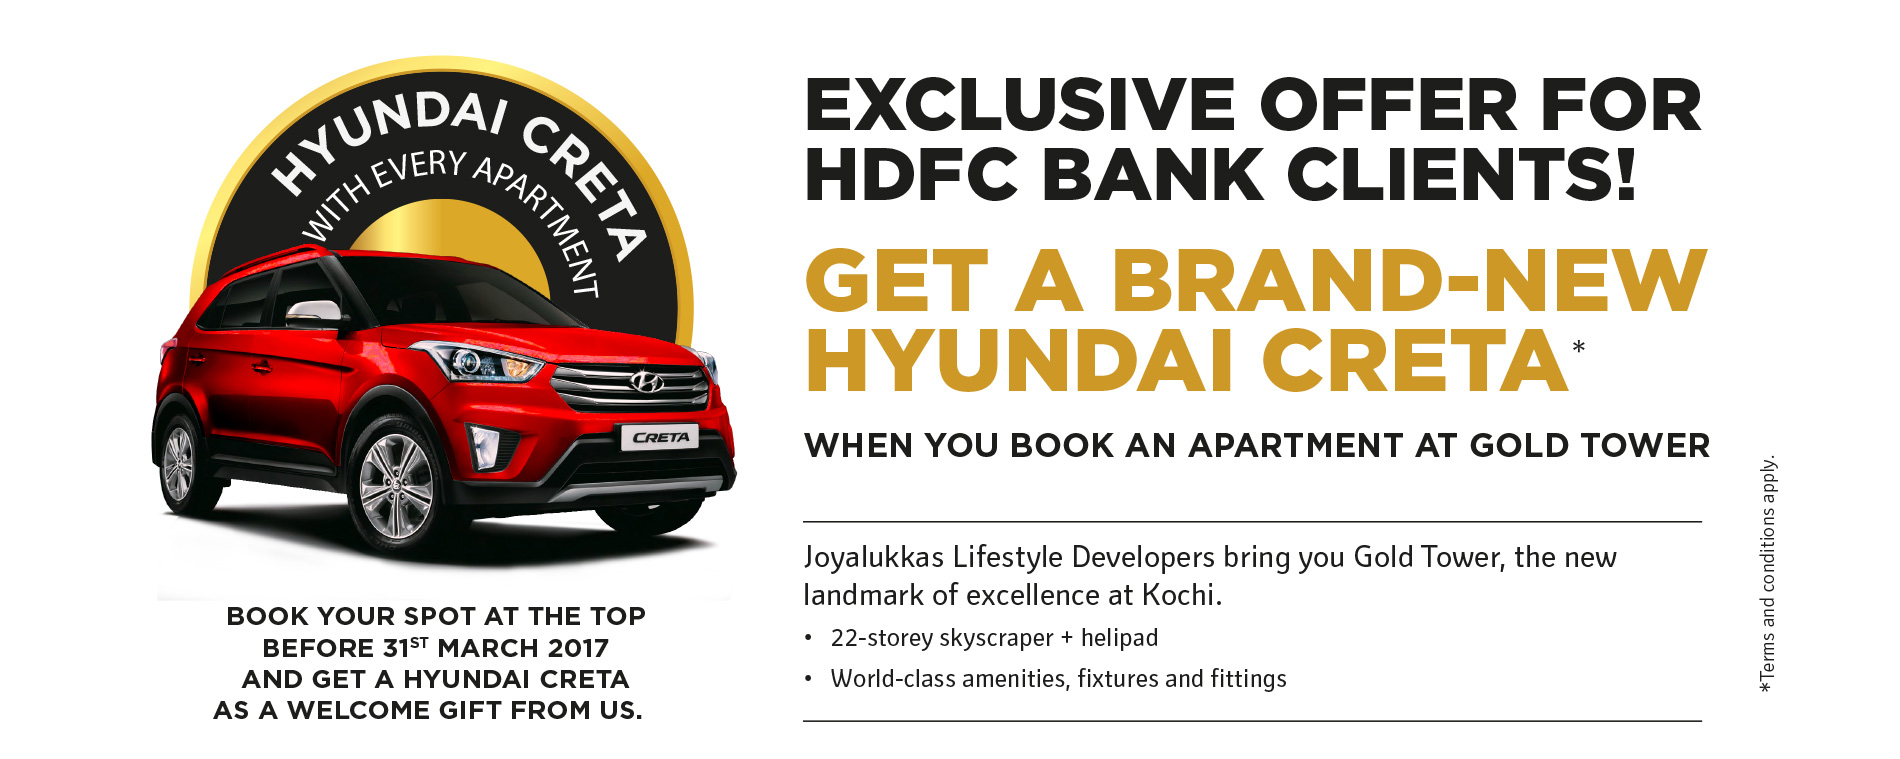 Image of offer details | get a brand new hyundai creta | when u book an apartment in gold tower